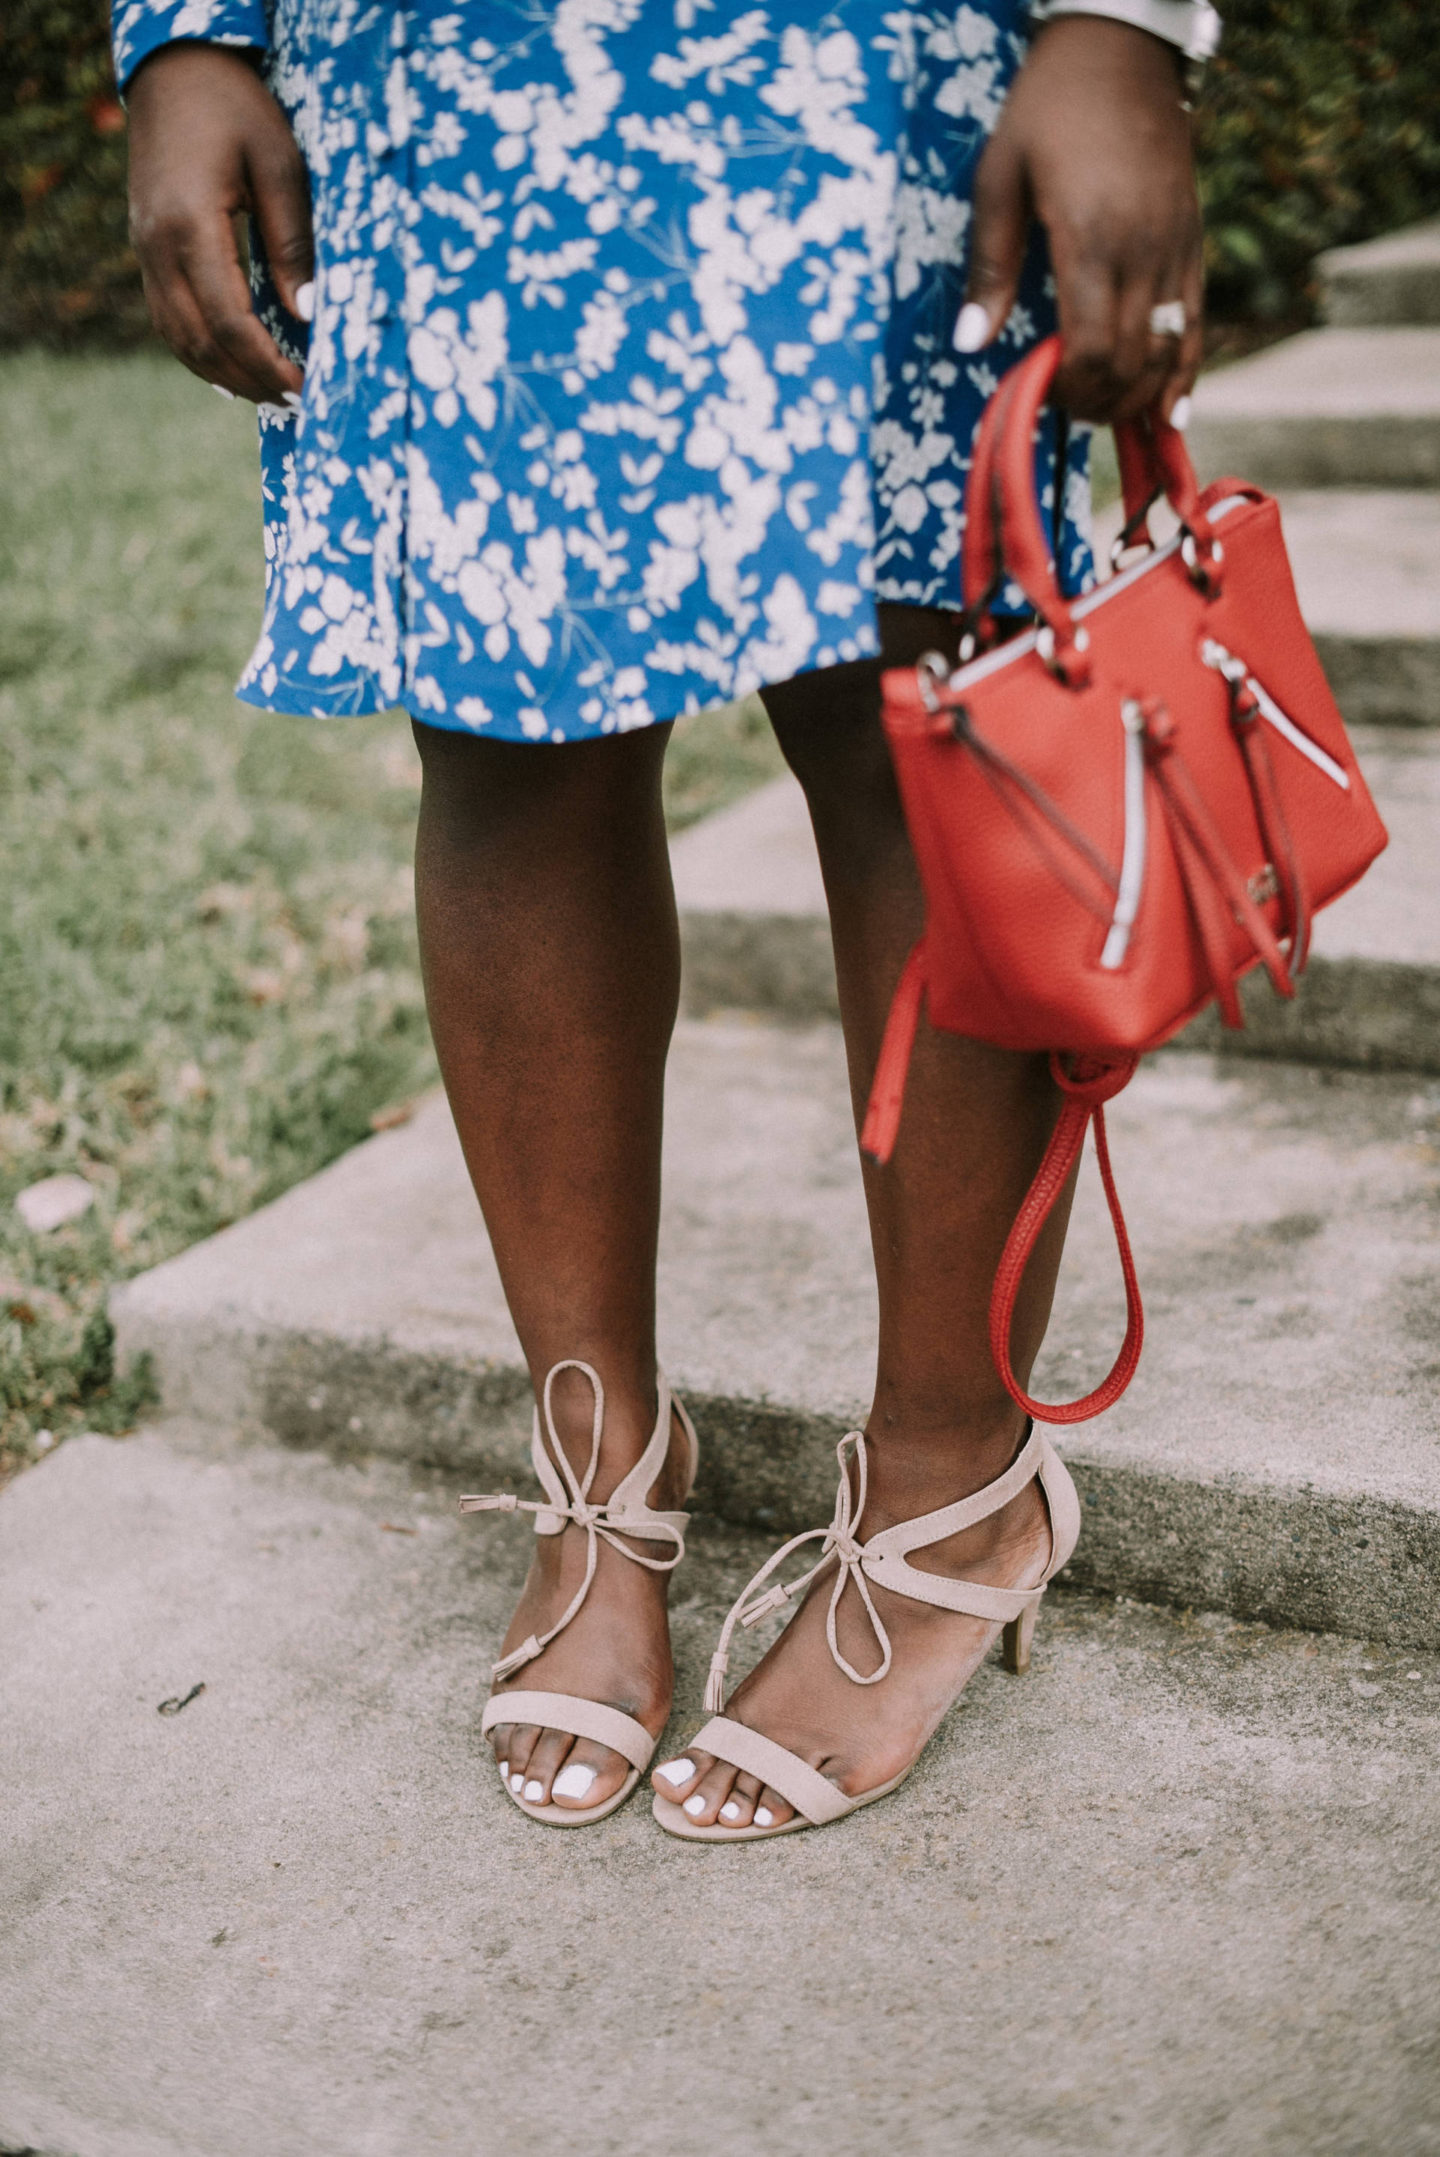 bring-on-spring-with-shoe-carnival- details